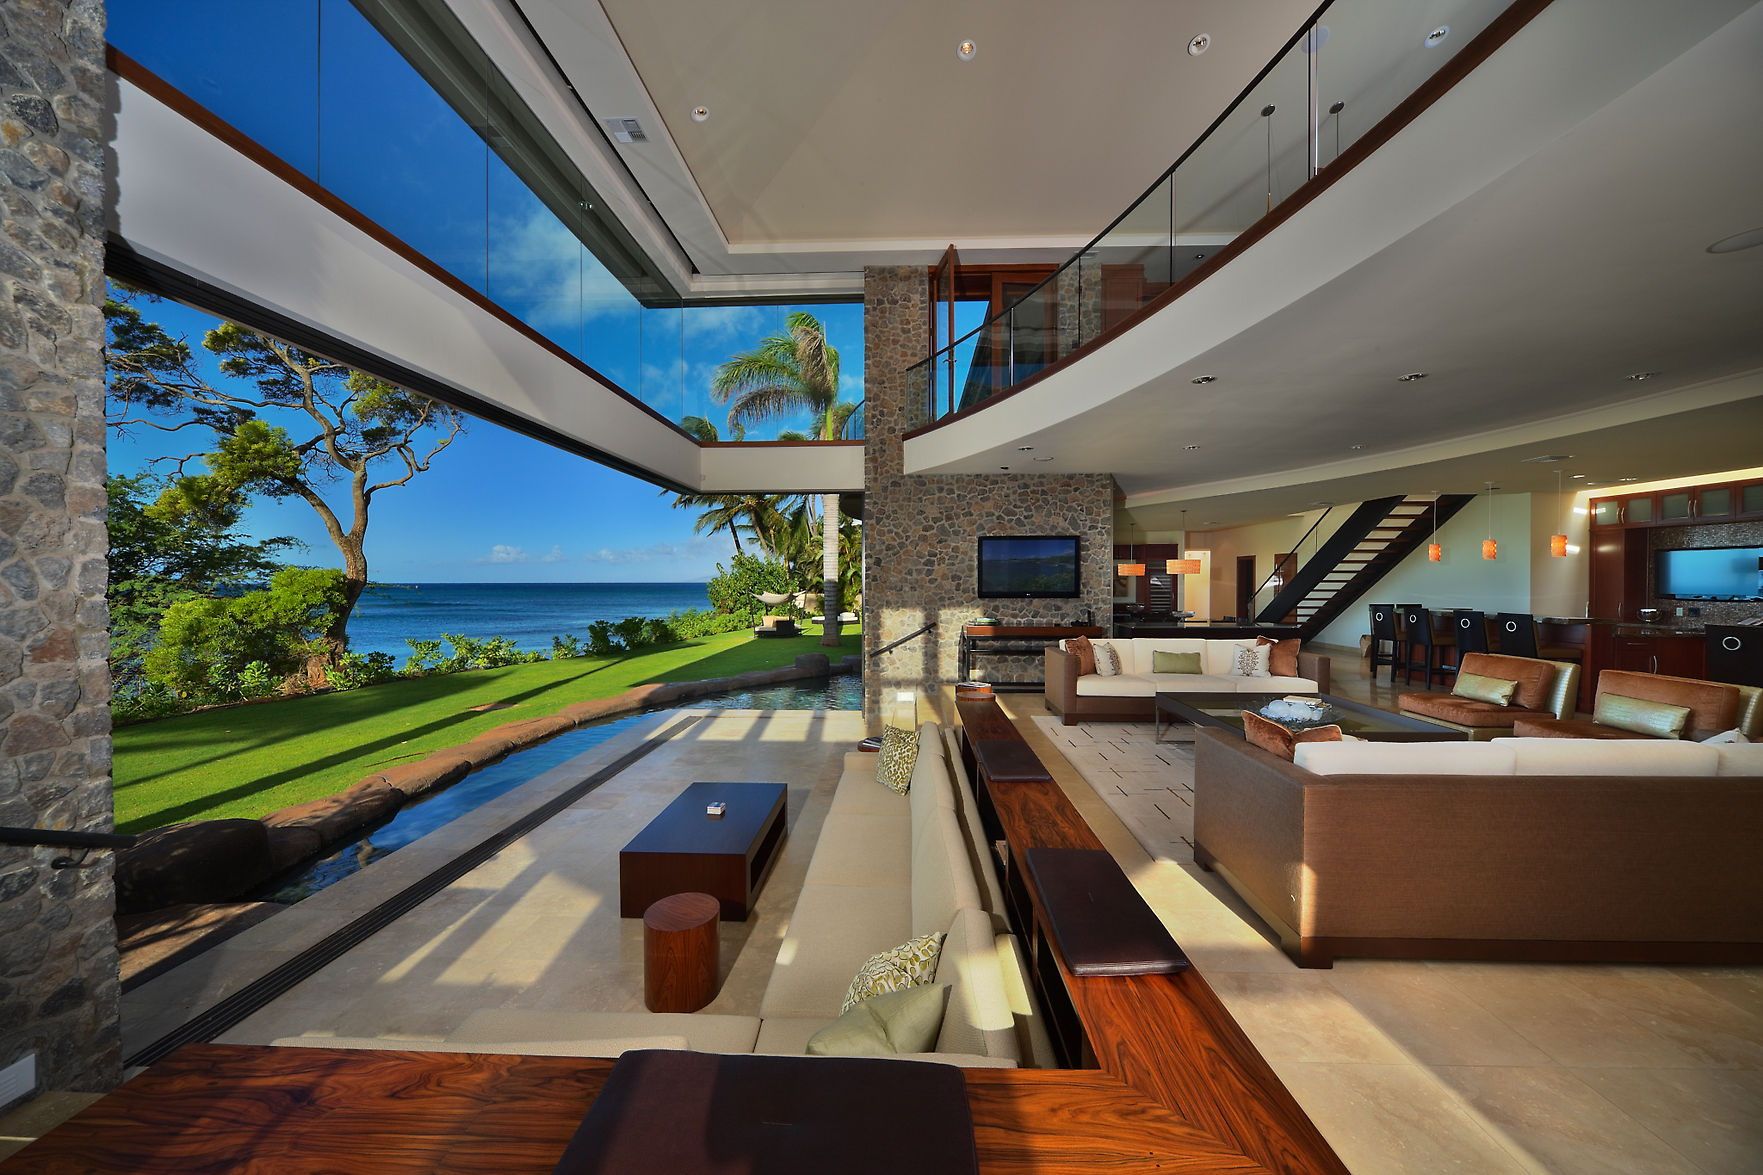 Stunning New Luxury Residence in Hawaii by Arri Lecron Architects